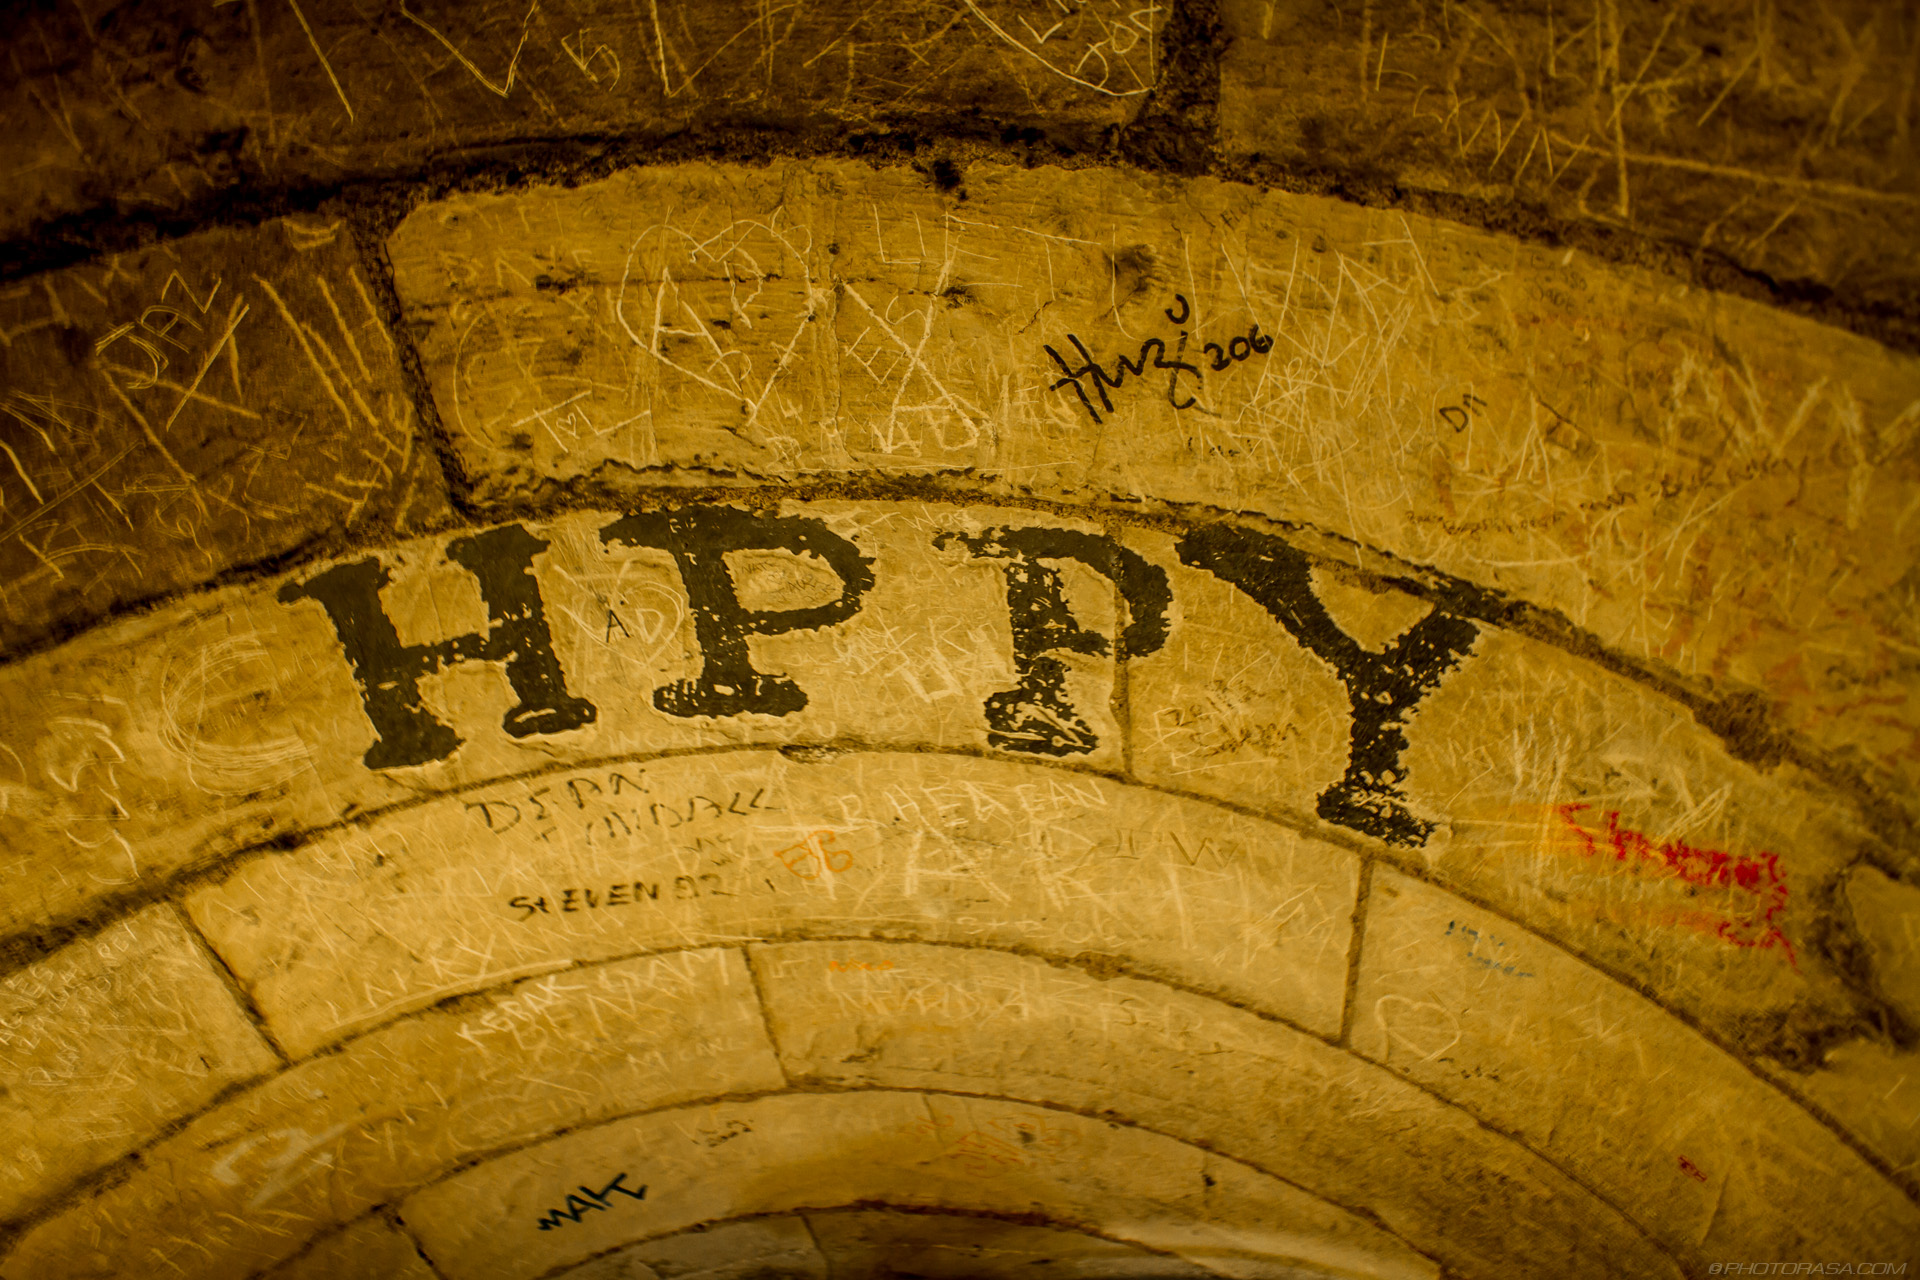 http://photorasa.com/places/yorkminster-cathedral/attachment/hppy-big-letter-graffiti/